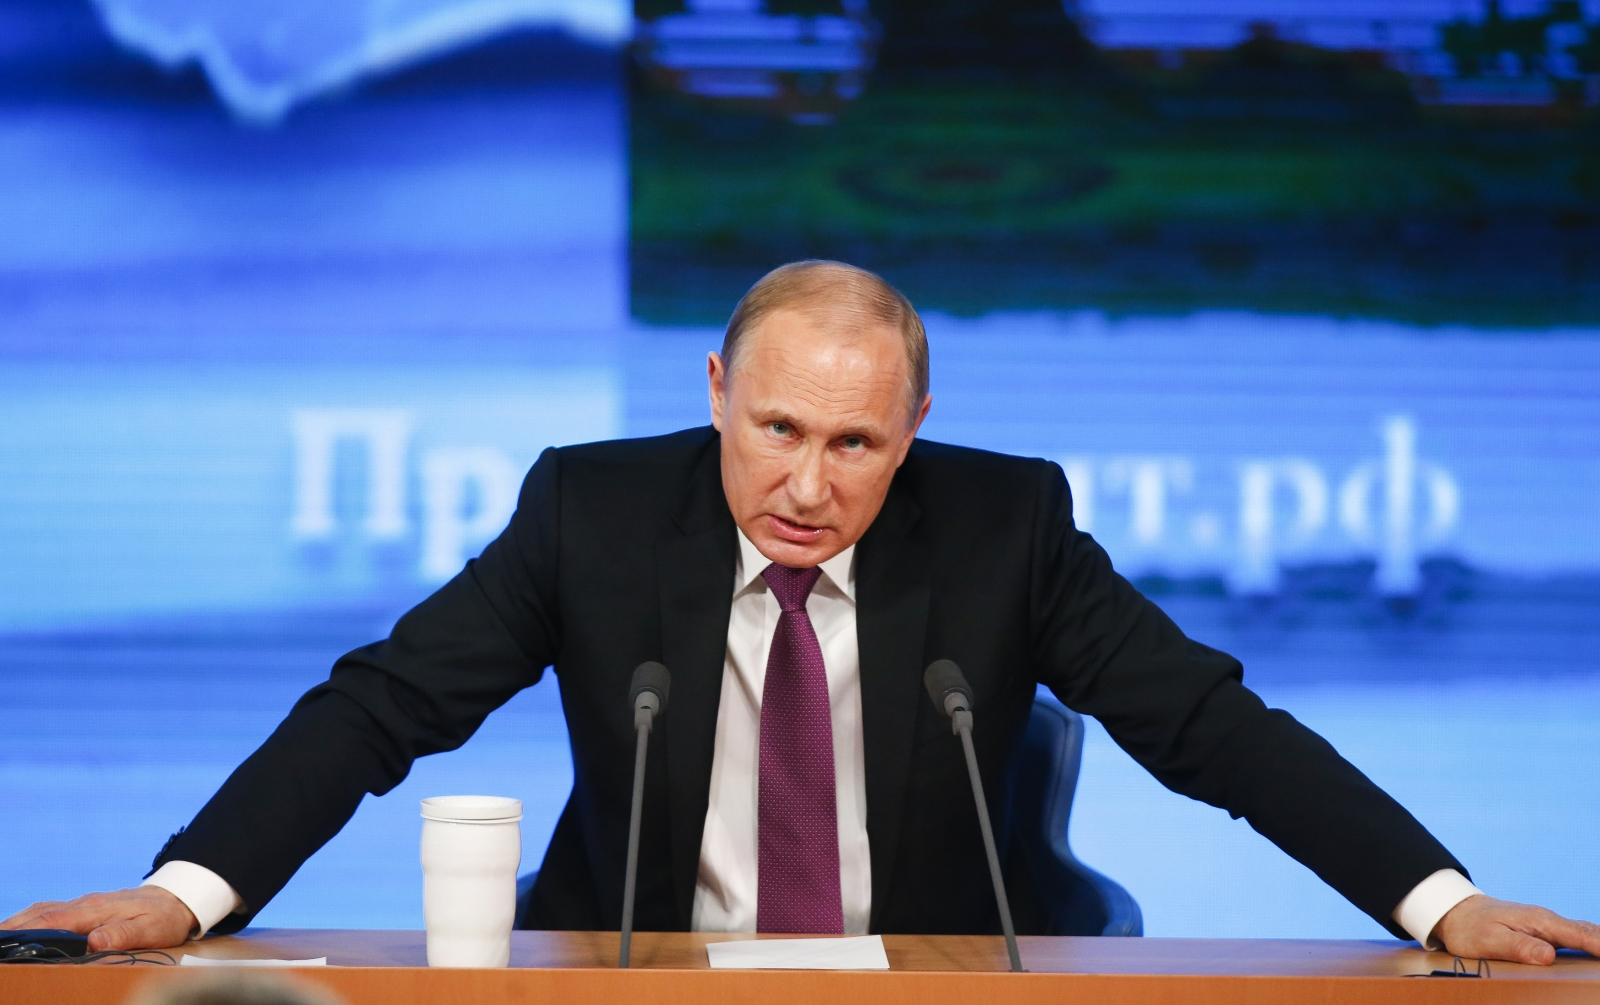 Russian President Vladimir Putin speaks during his annual end-of-year news conference in Moscow, December 18, 2014.